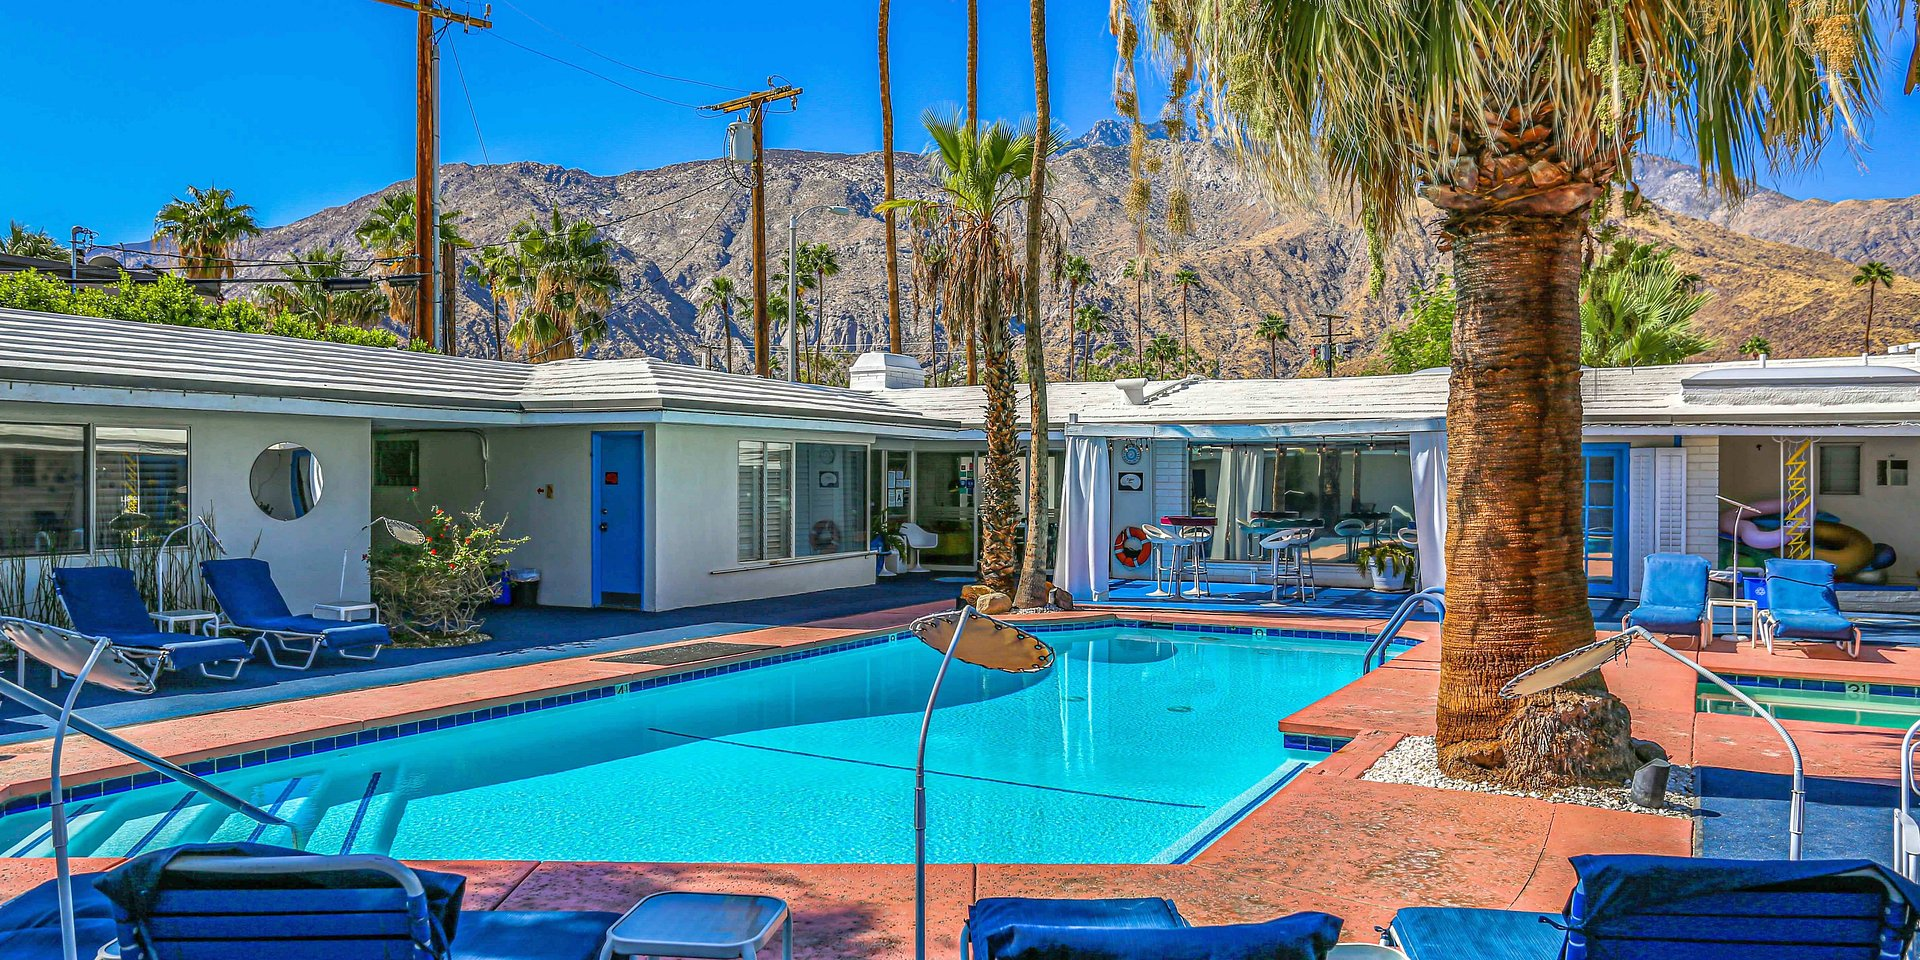 Coldwell Banker Residential Brokerage Lists Historical Palm Springs Bed & Breakfast Hotel for $1.5888 Million